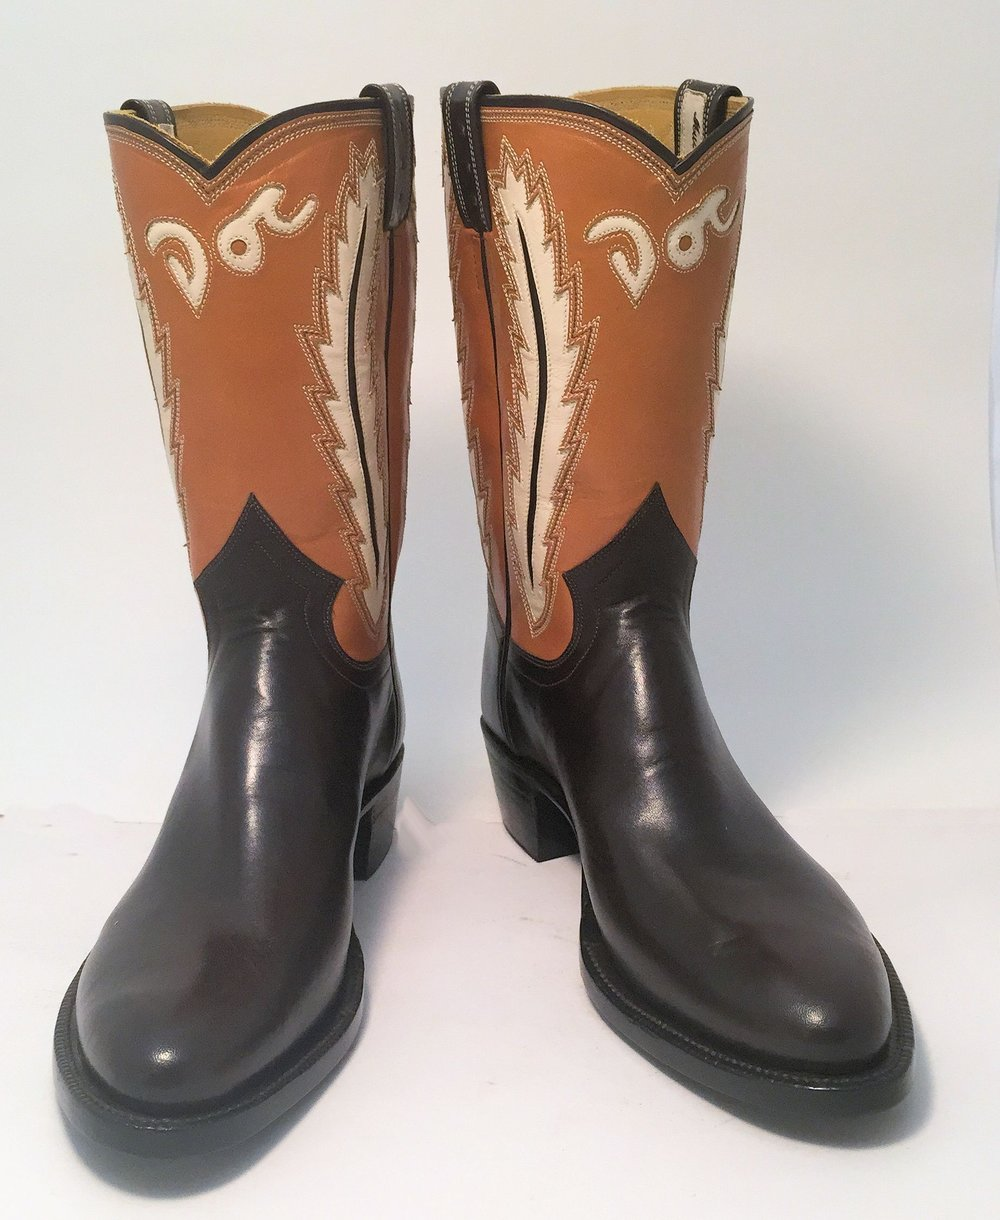 Inlayed Cowboy Boot